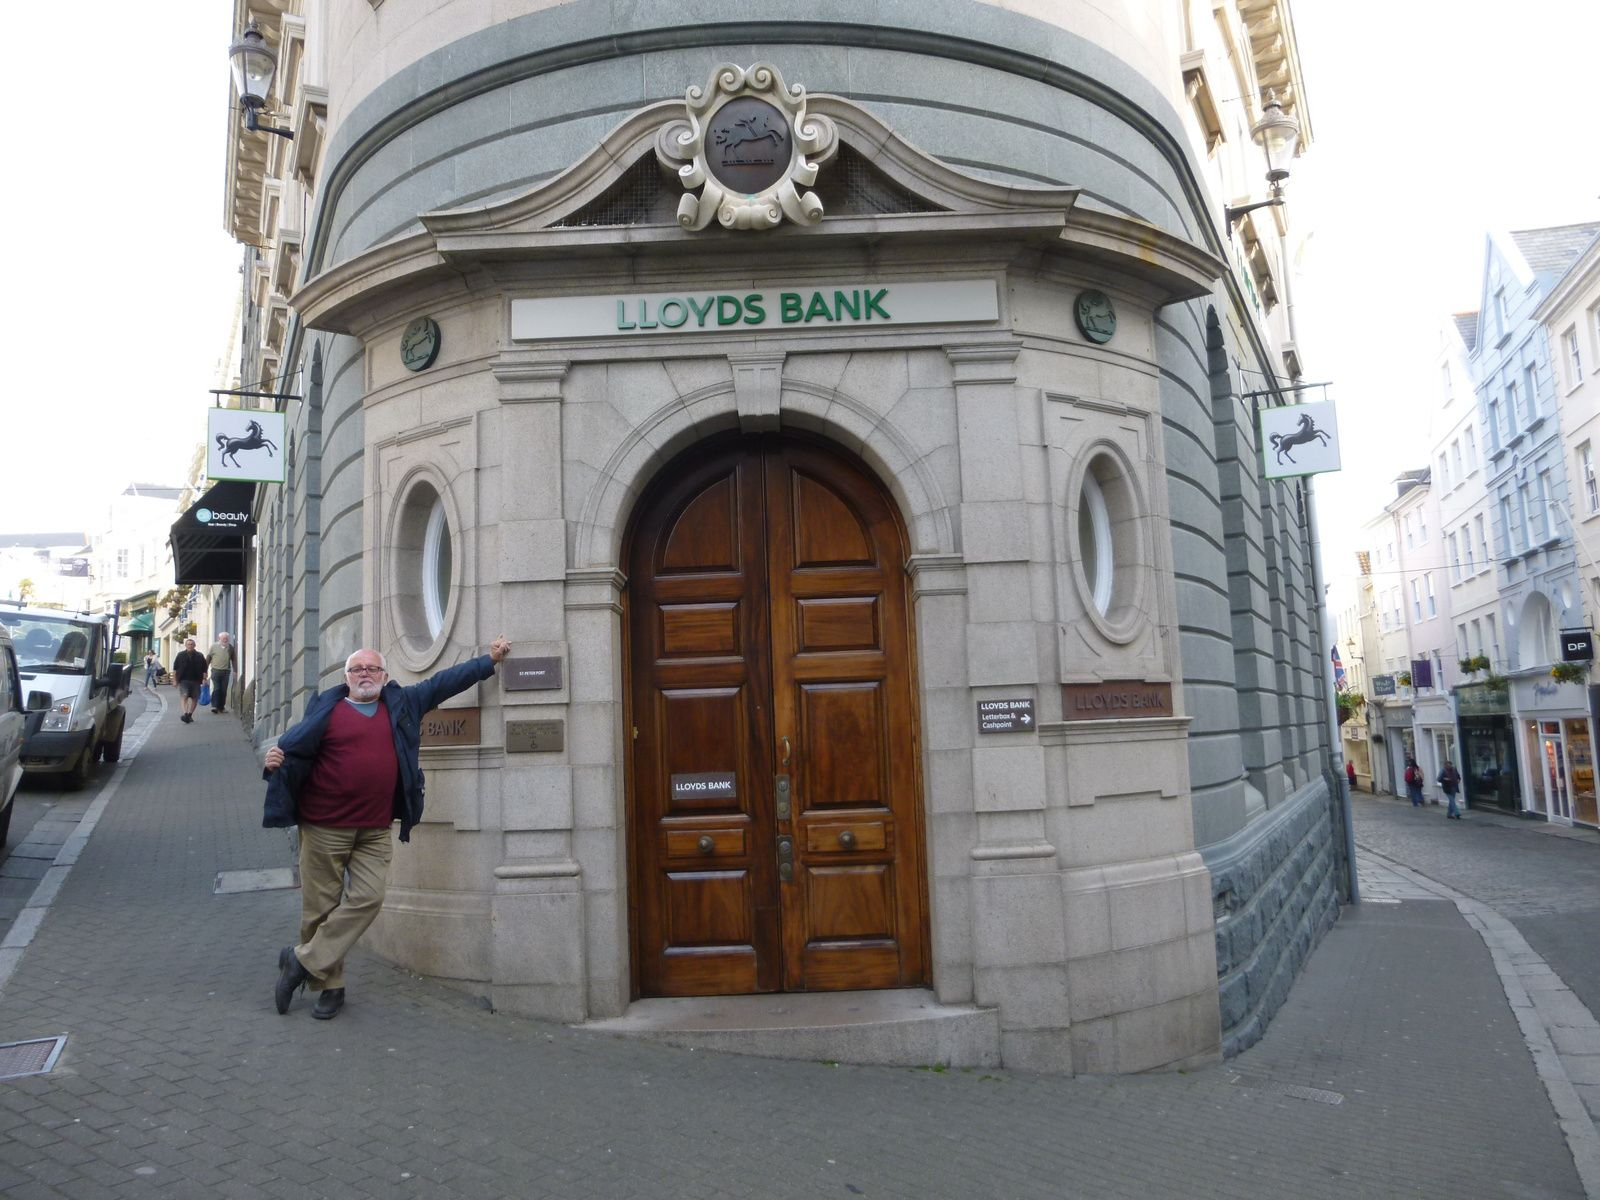 Boulangerie Victor Hugo, Sir René the Lloyds Manager, the Pollet Street at St Peter